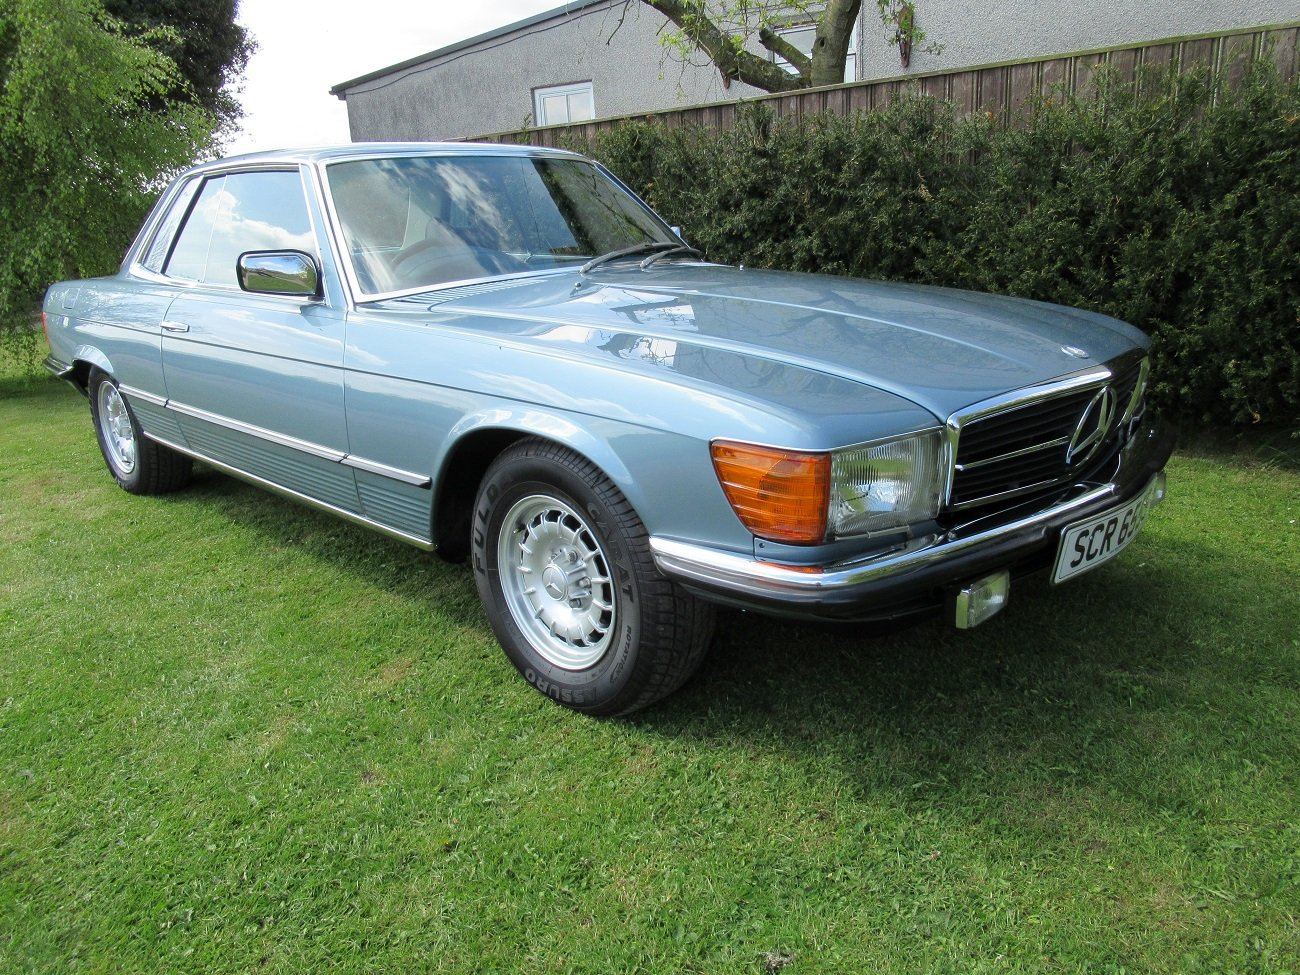 1977 MERCEDES 450 SLC  C107 50,000 Miles only. For Sale (picture 1 of 6)